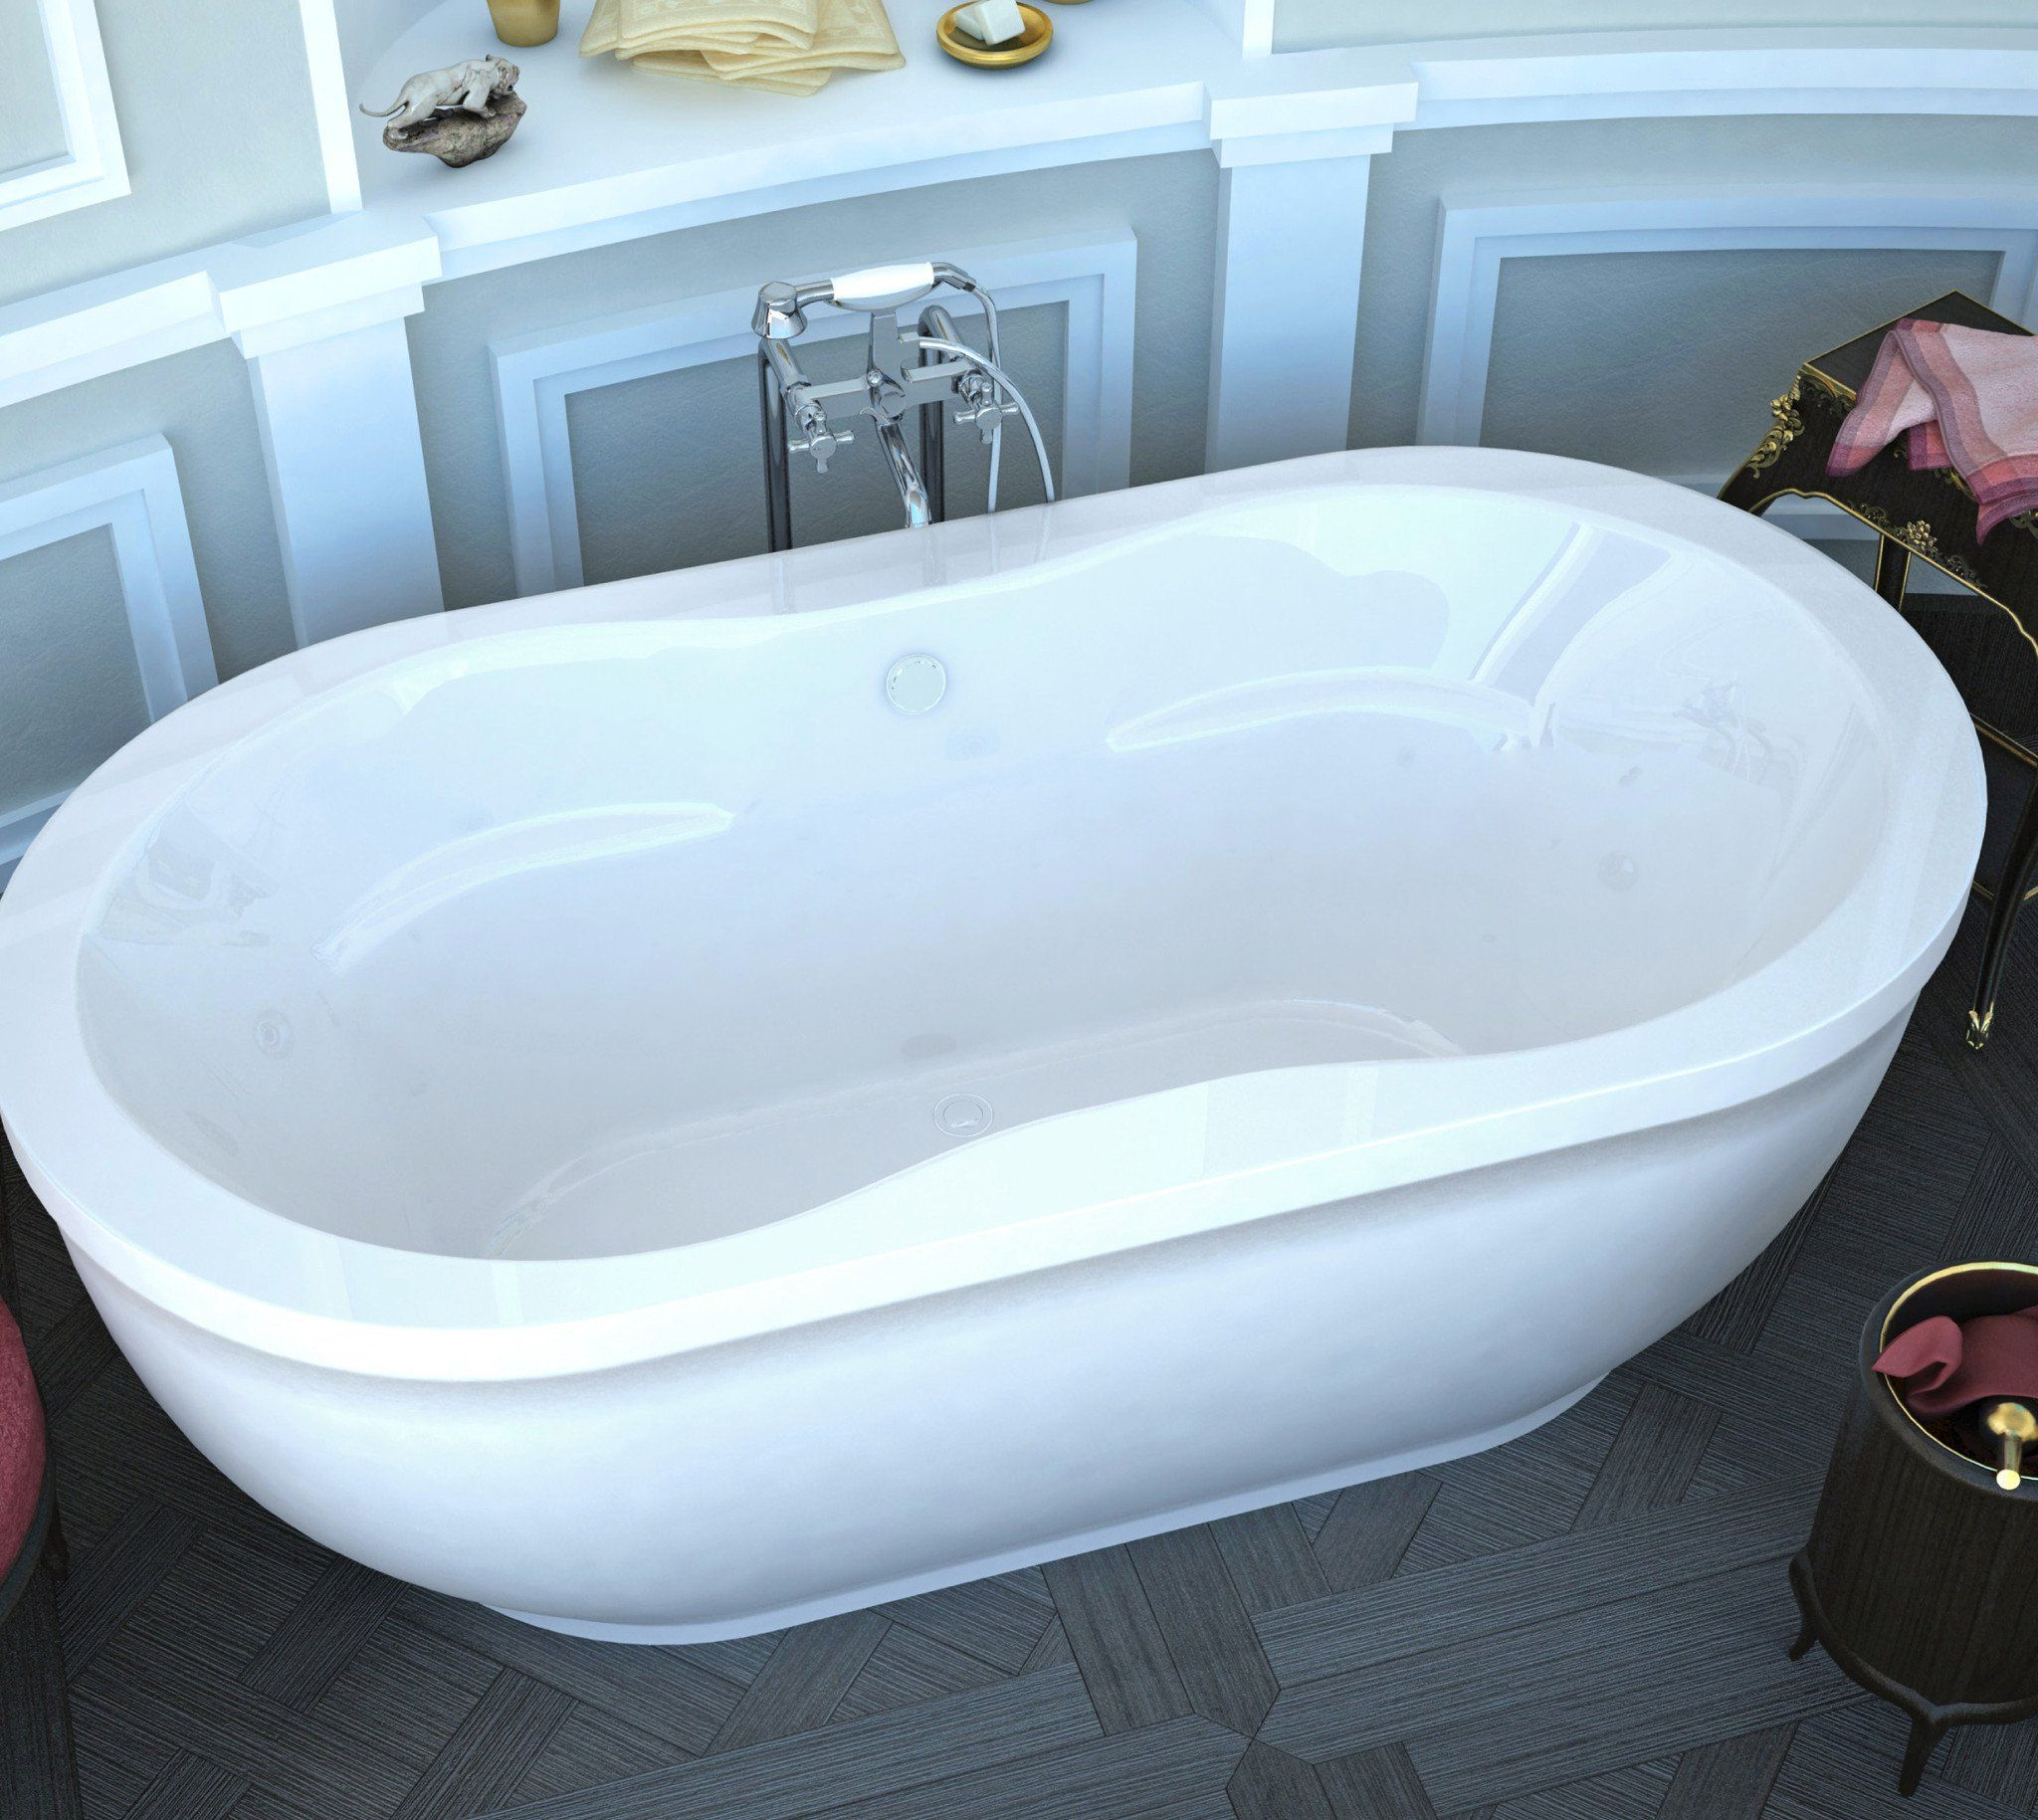 Atlantis Whirlpools 3471AS Embrace 34 x 71 Oval Freestanding Soaker ...